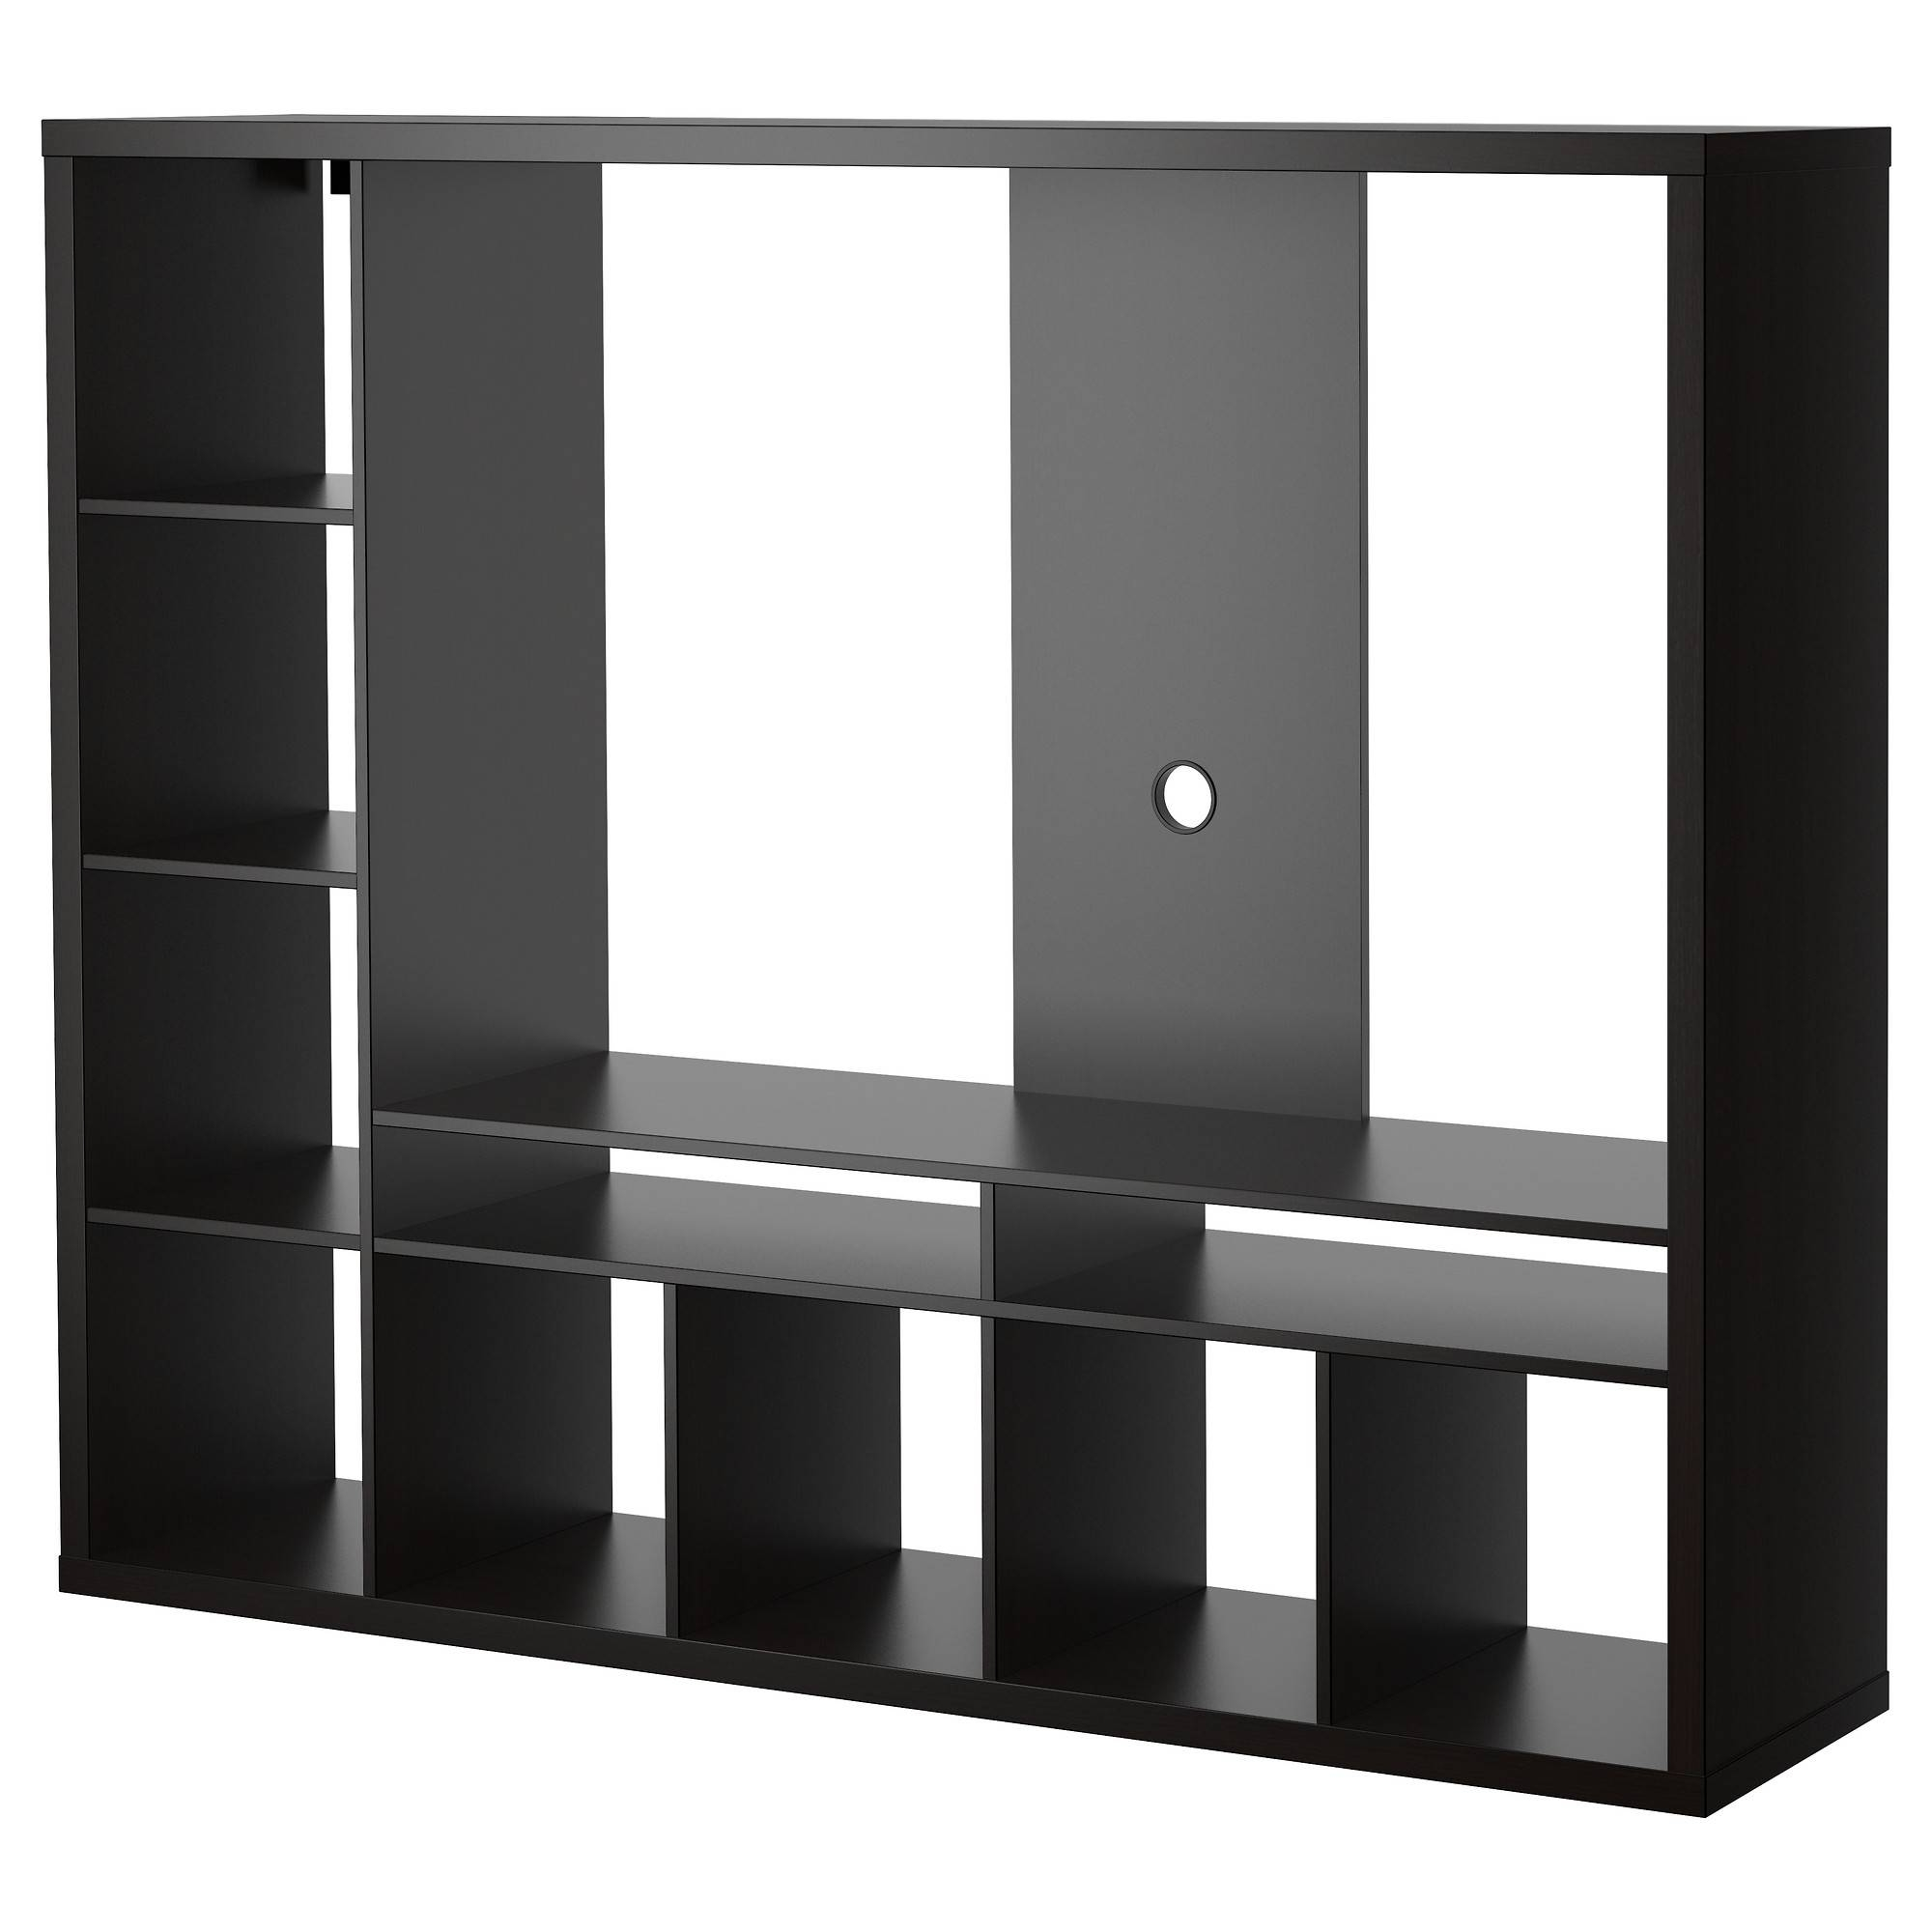 Lappland Tv Storage Unit – Black Brown – Ikea Throughout Tv Stands With Baskets (View 9 of 15)